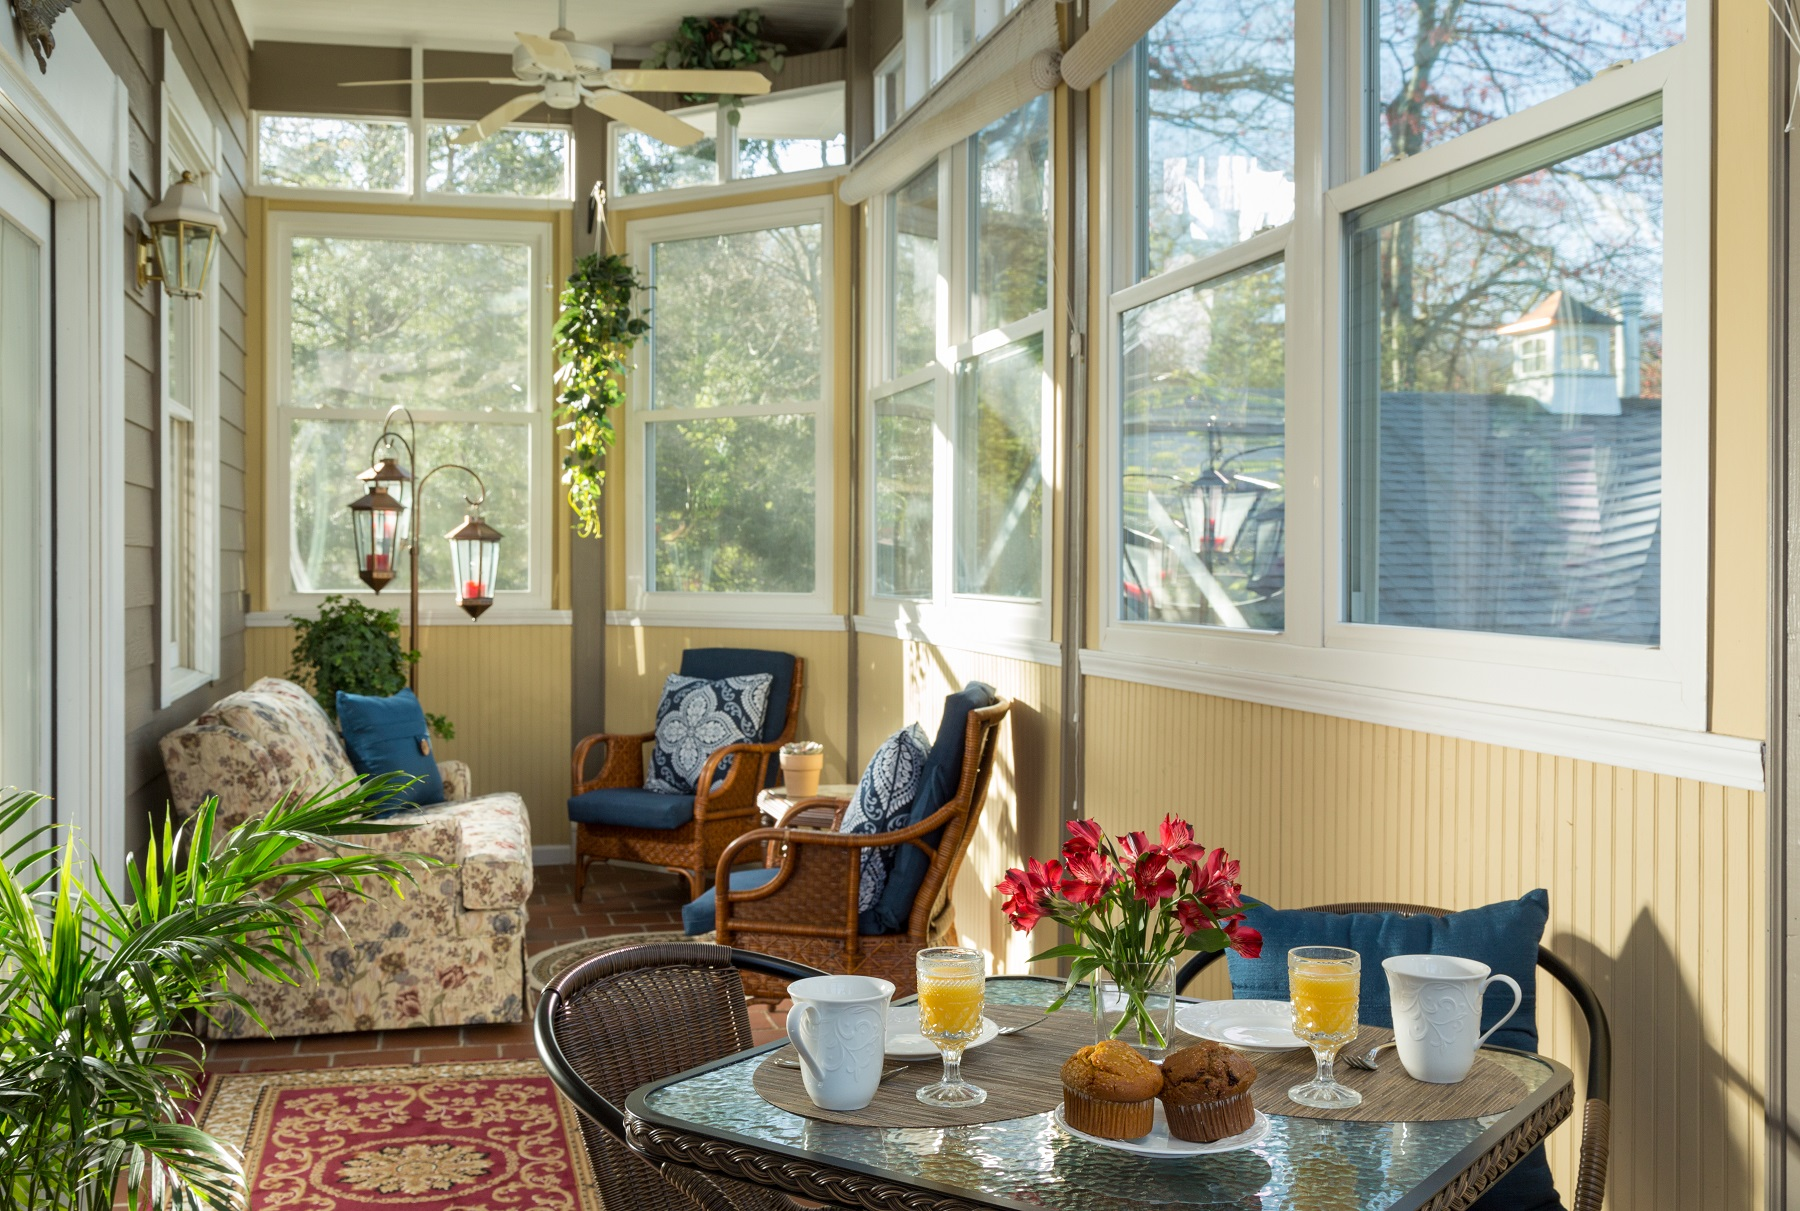 Breakfast on the porch in the magnolia suite